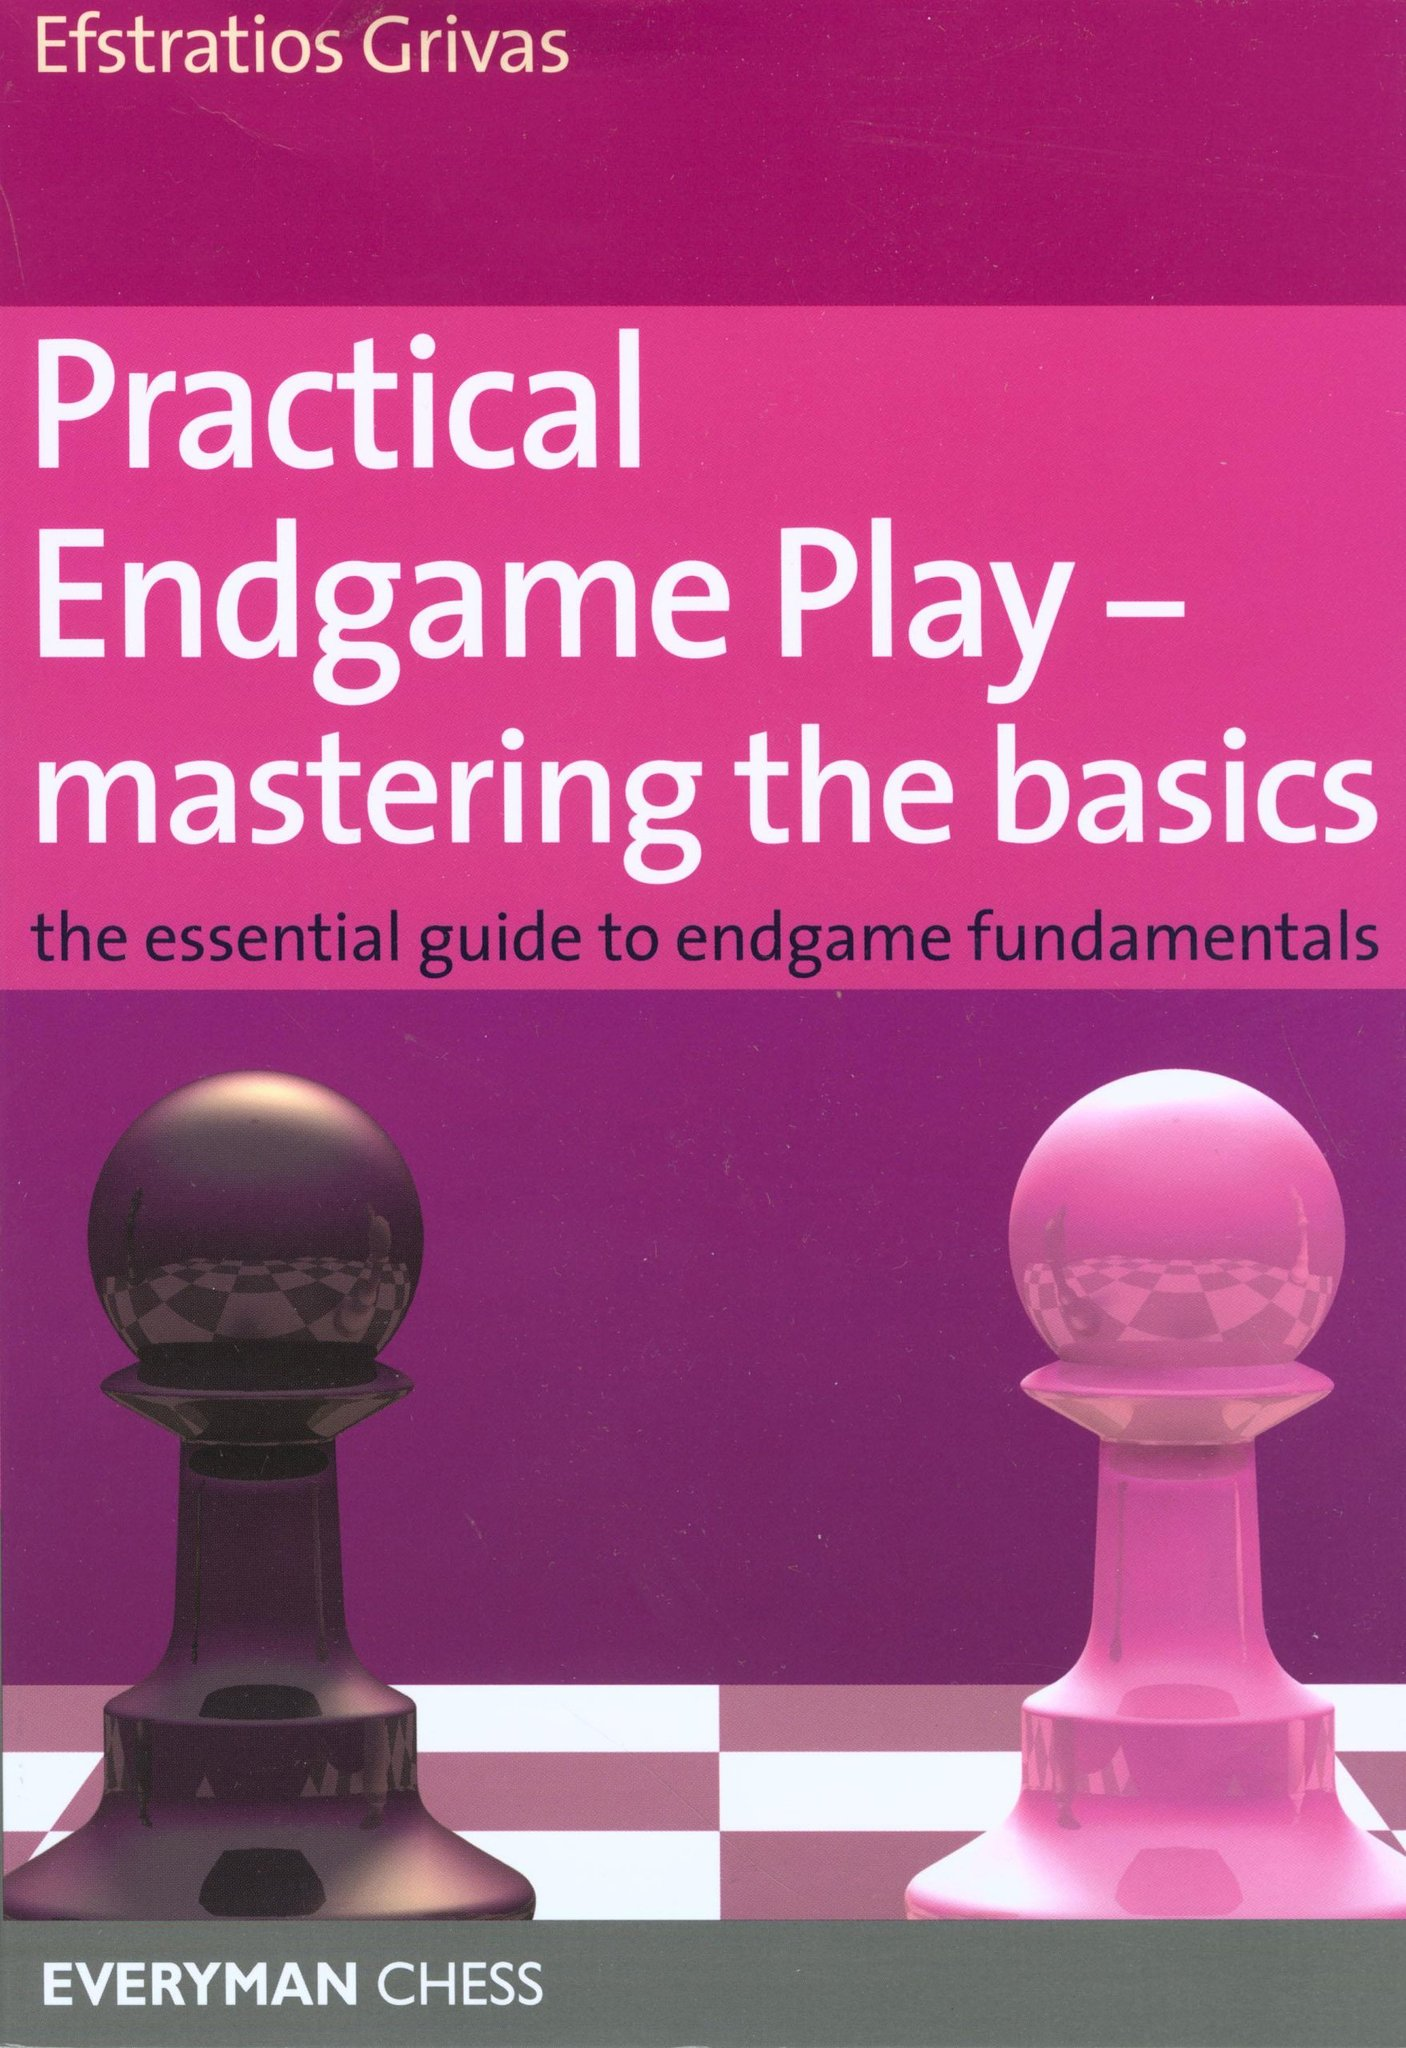 Practical Endgame Play: mastering the basics - Everyman Chess